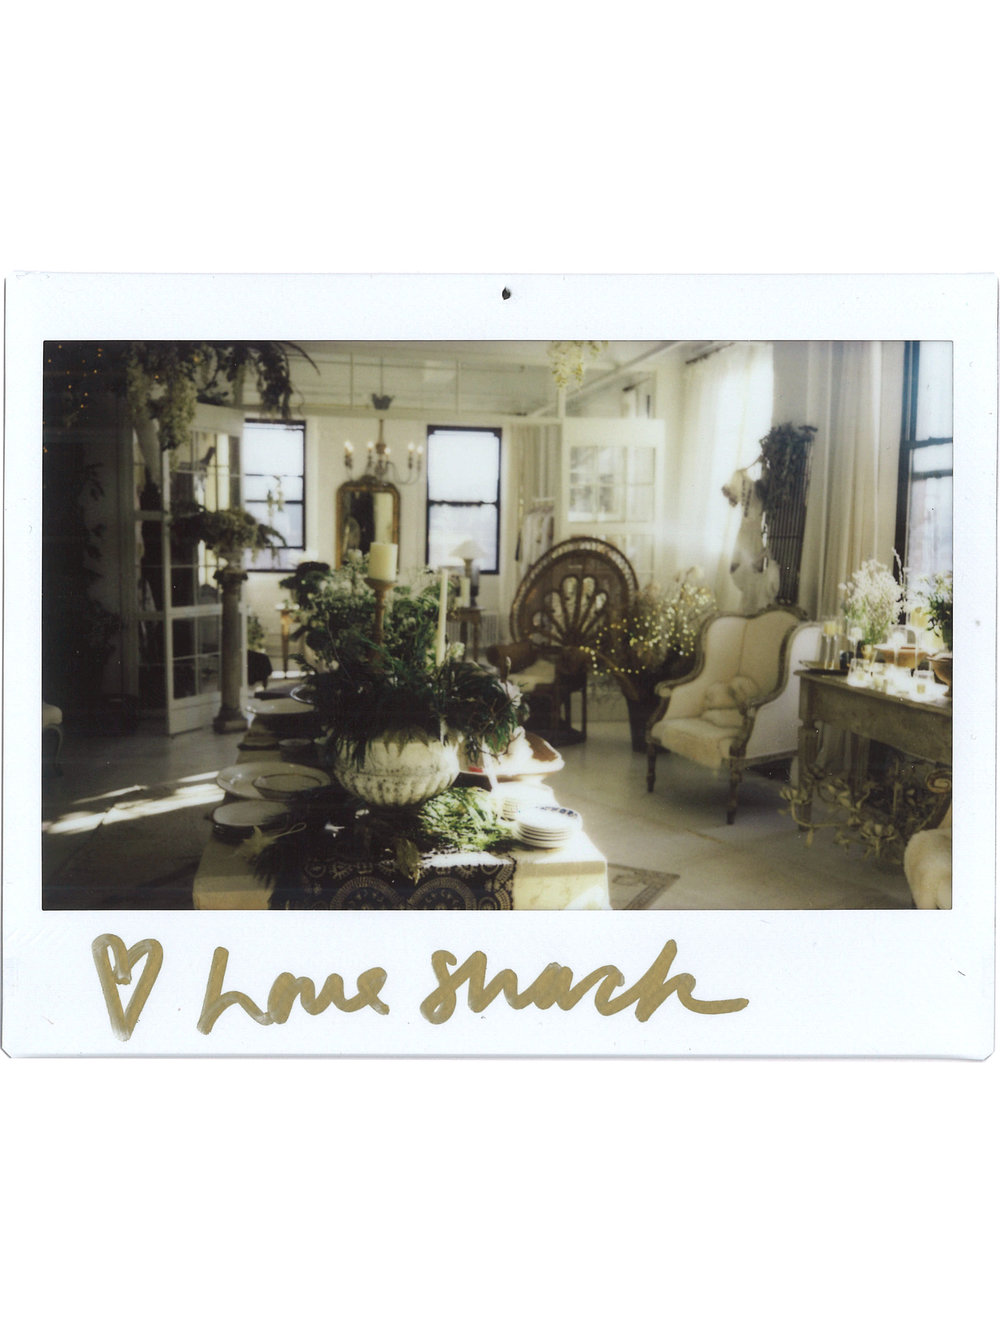 showroom polaroid.jpg